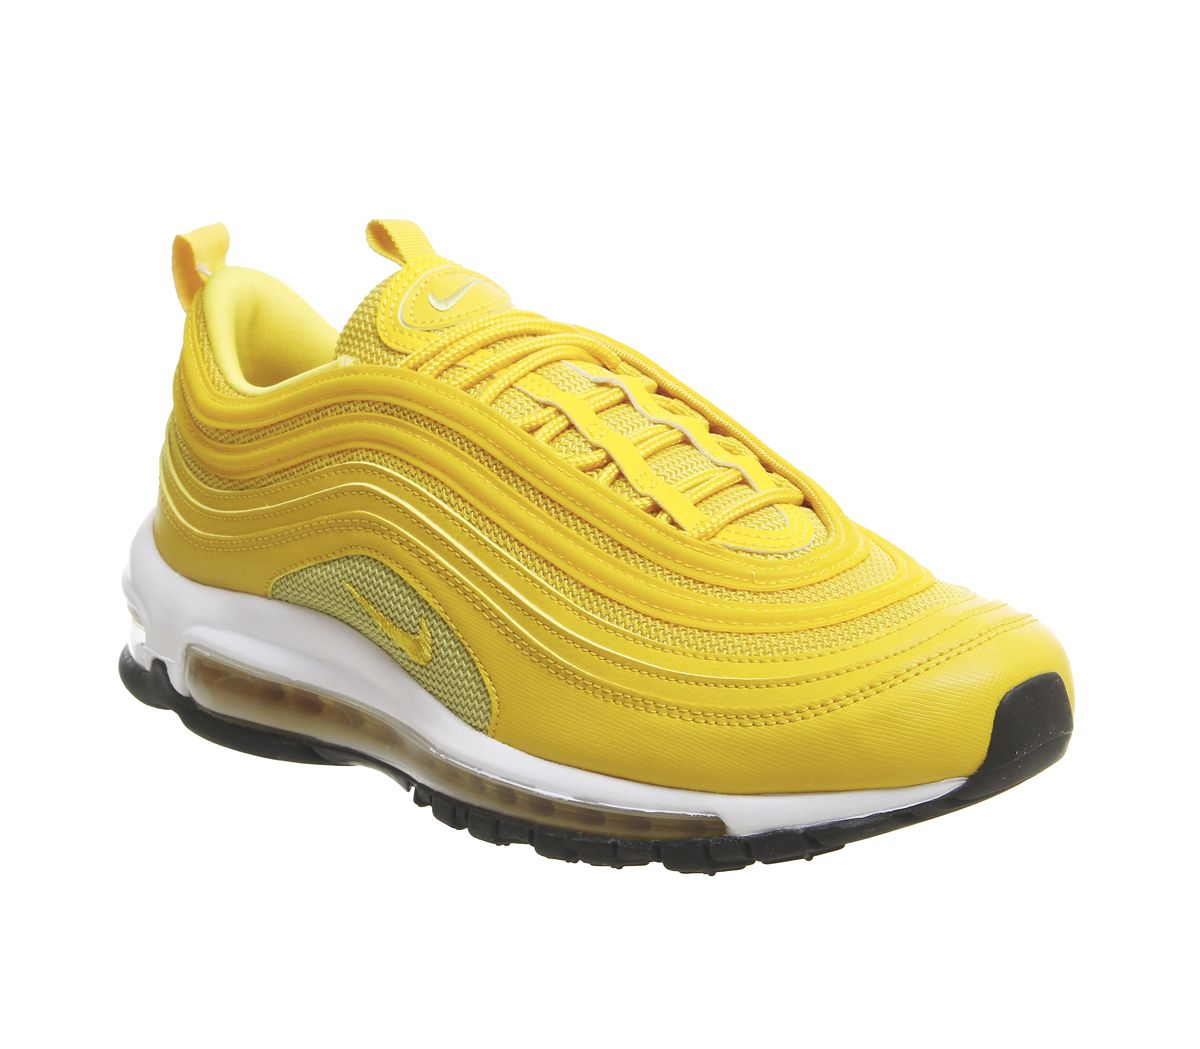 e28a25e575027 Nike Air Max 97 Trainers Mustard Buff Gold - Hers trainers